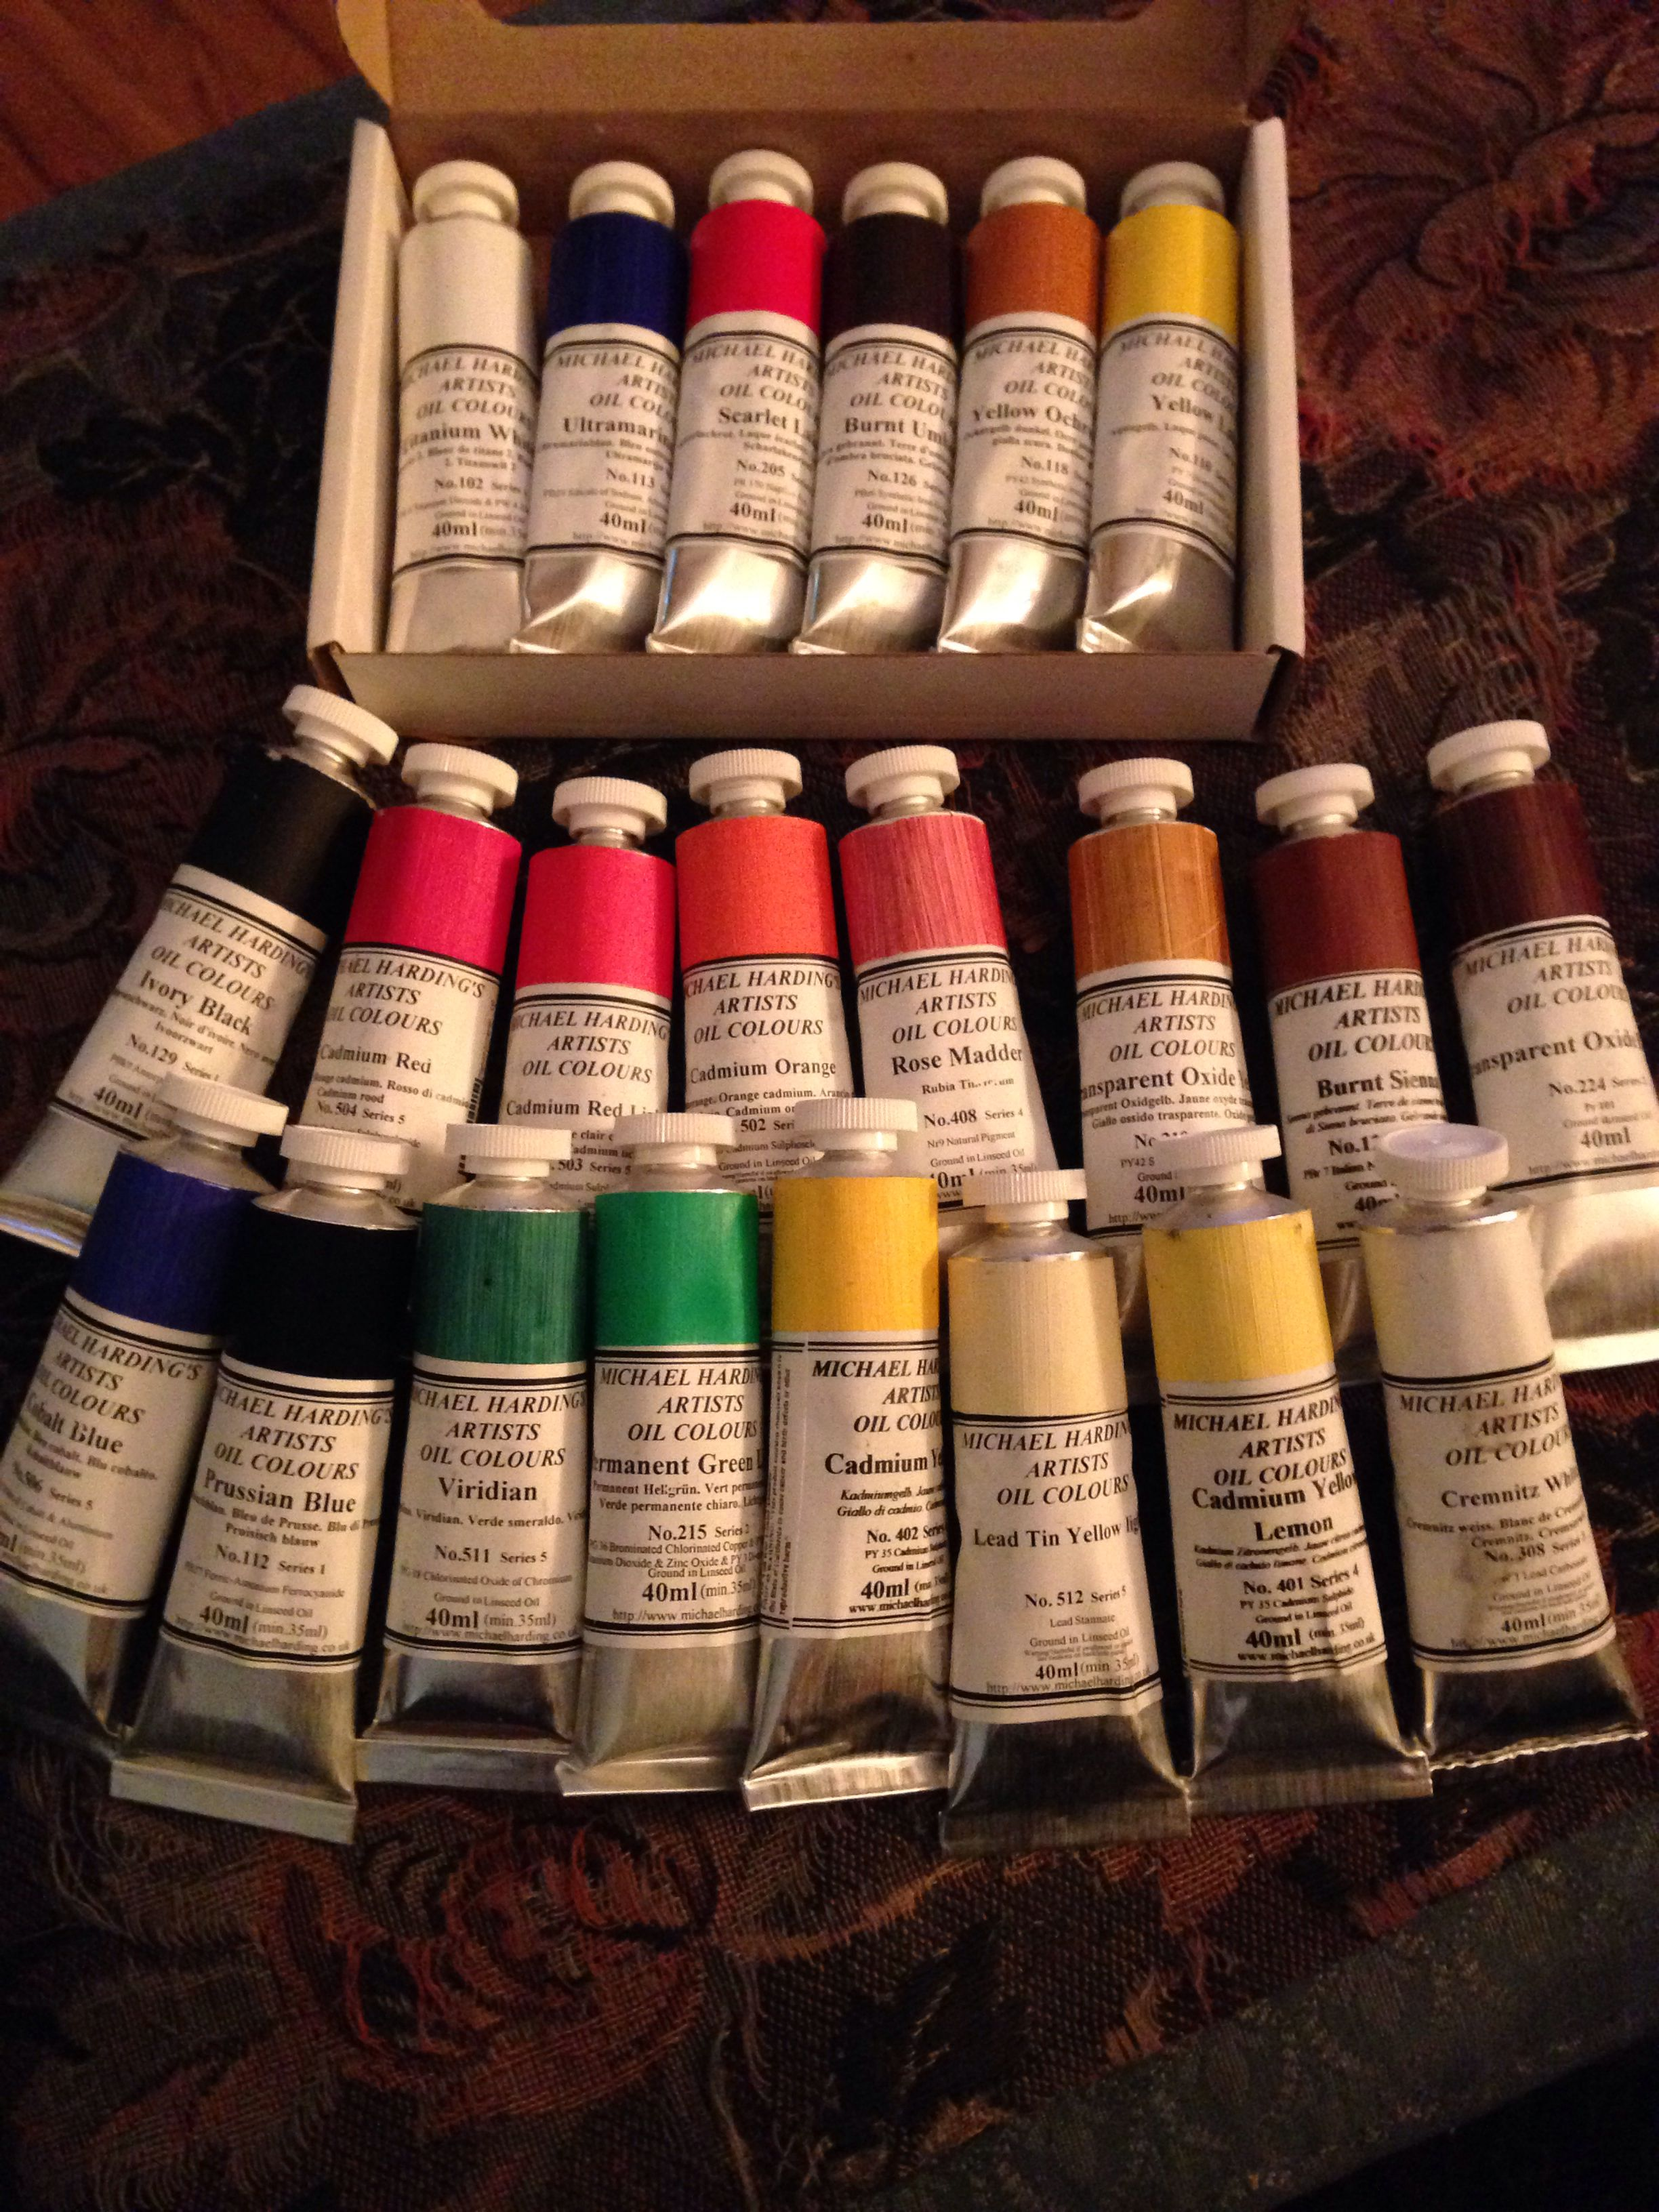 My brand new Michael Harding paints. Yummy!!! Colorful